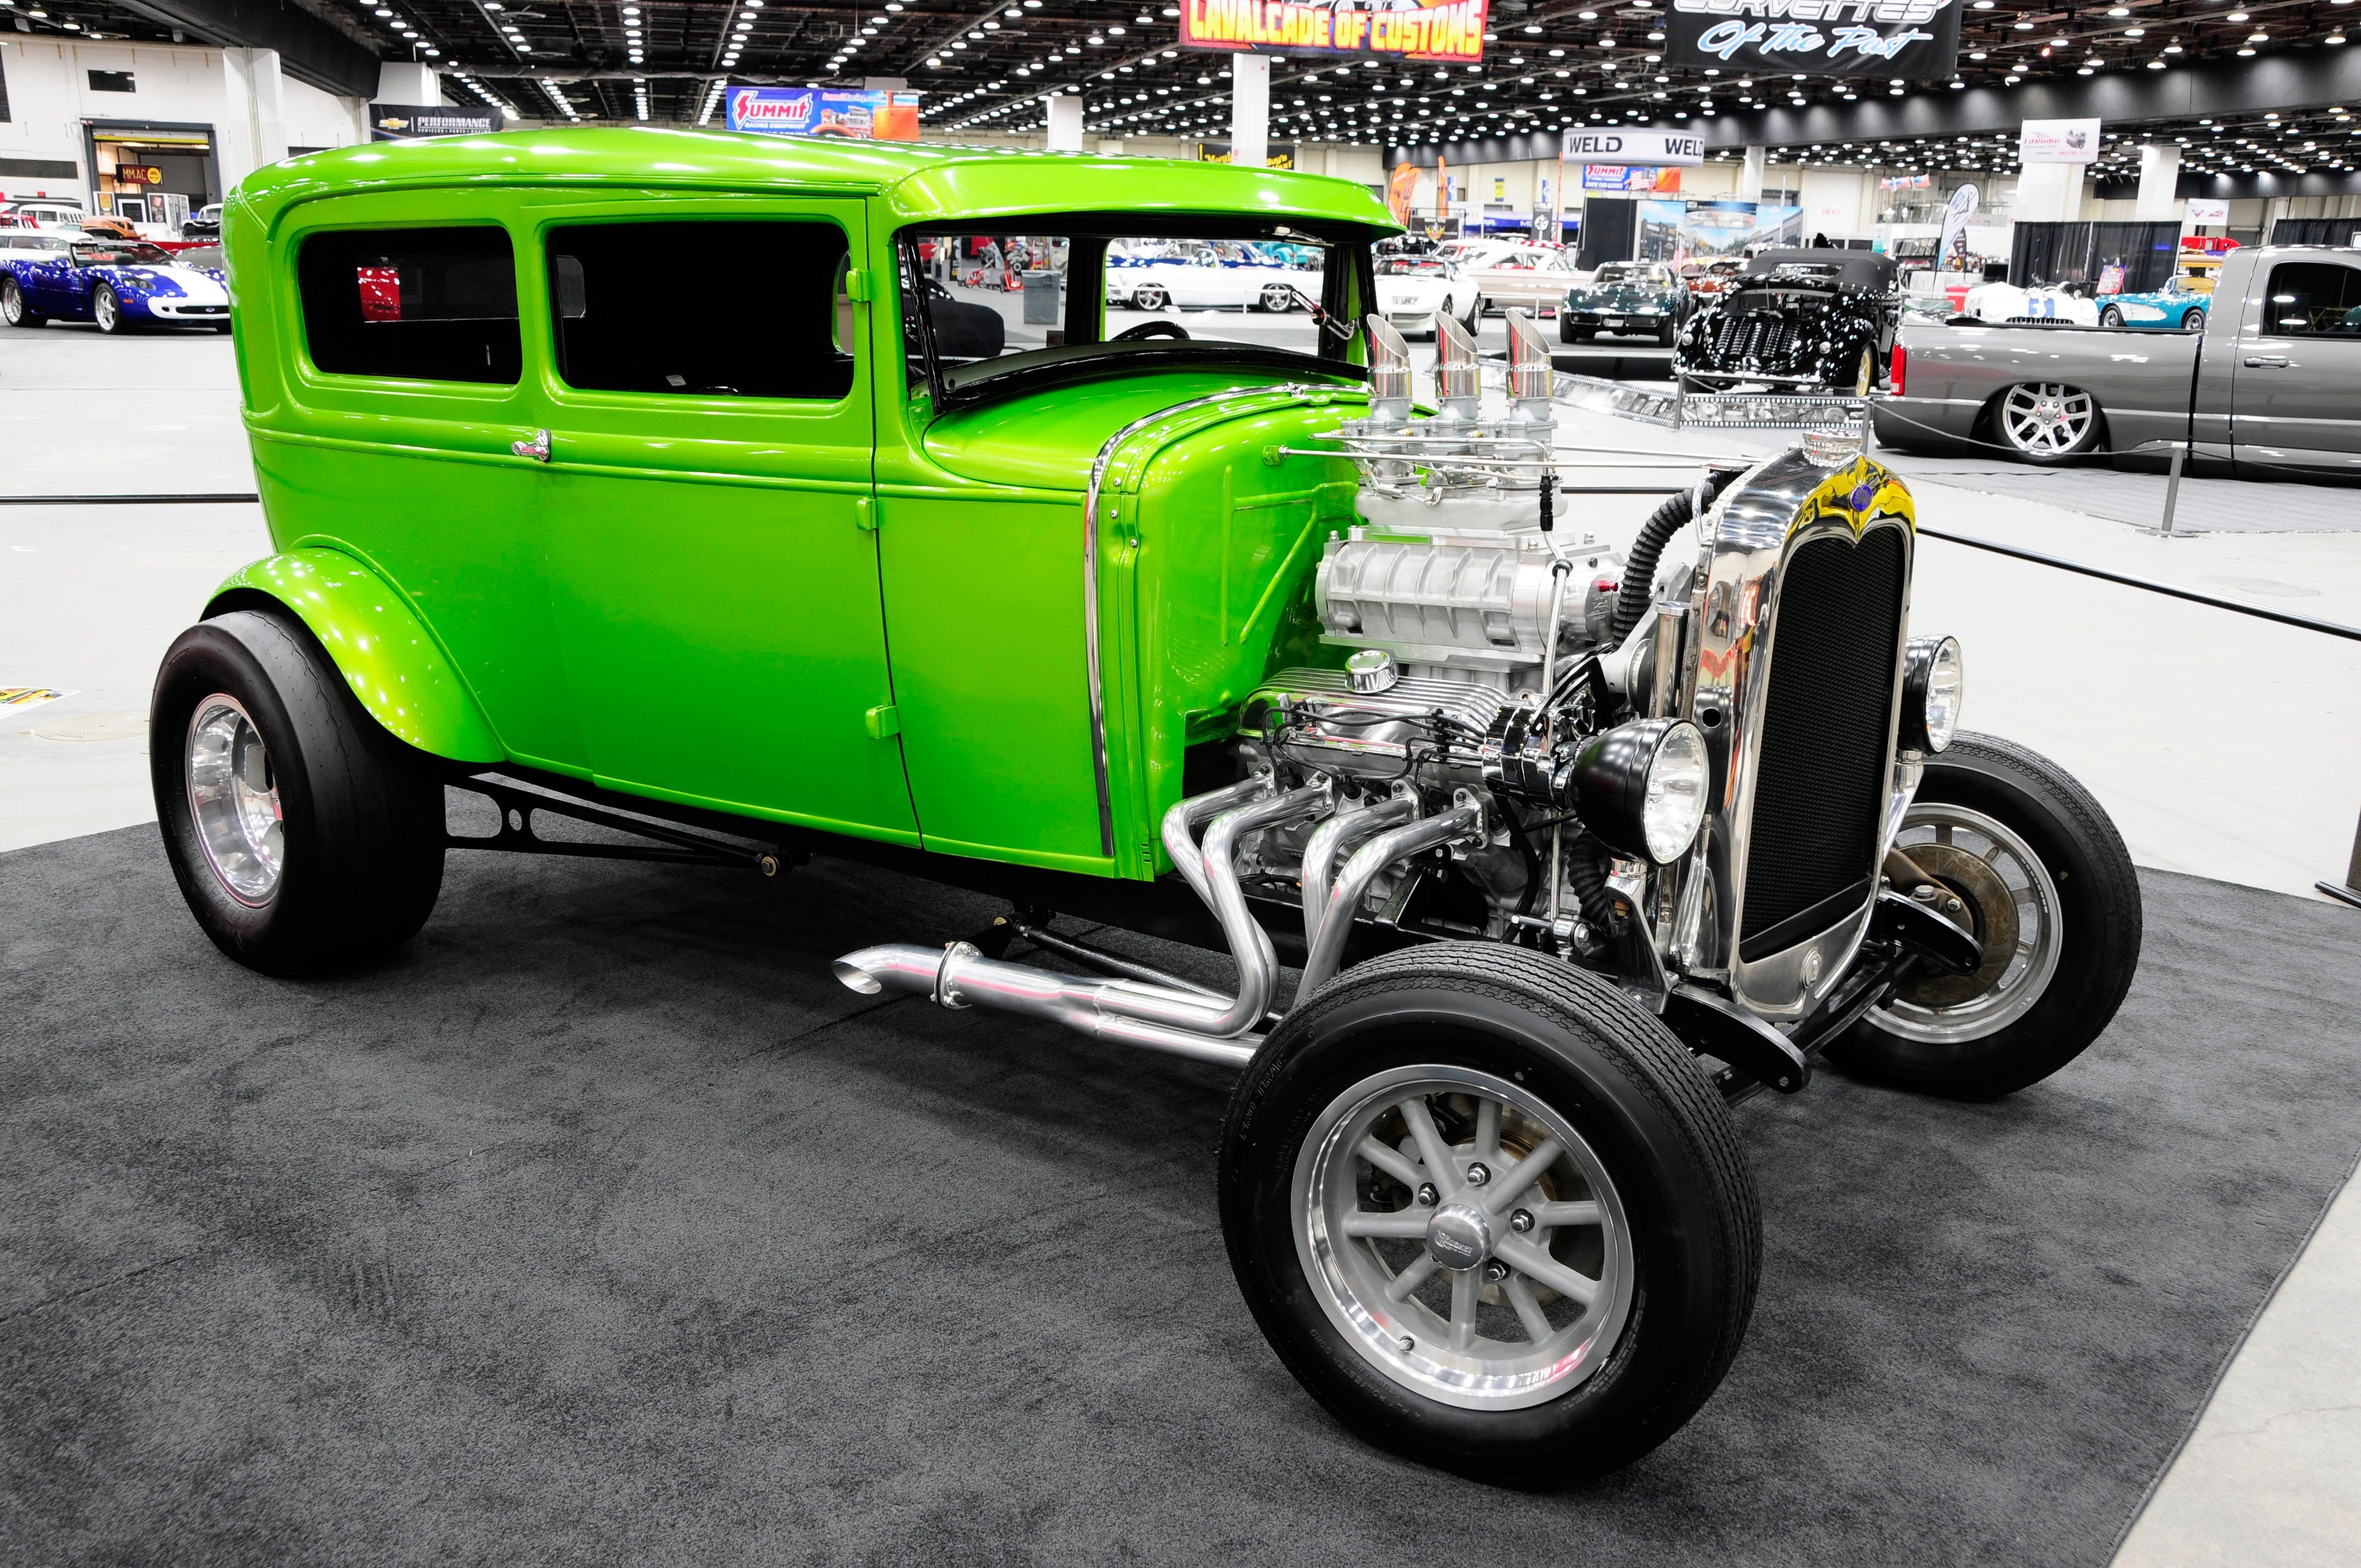 Old School Flames Hot Rod 1930 Ford Model A Sedan Two Door Street Rod Hot Old School Usa 02 Wallpaper 4288x Hot Rods Cars Street Rods Hot Rods Cars Muscle